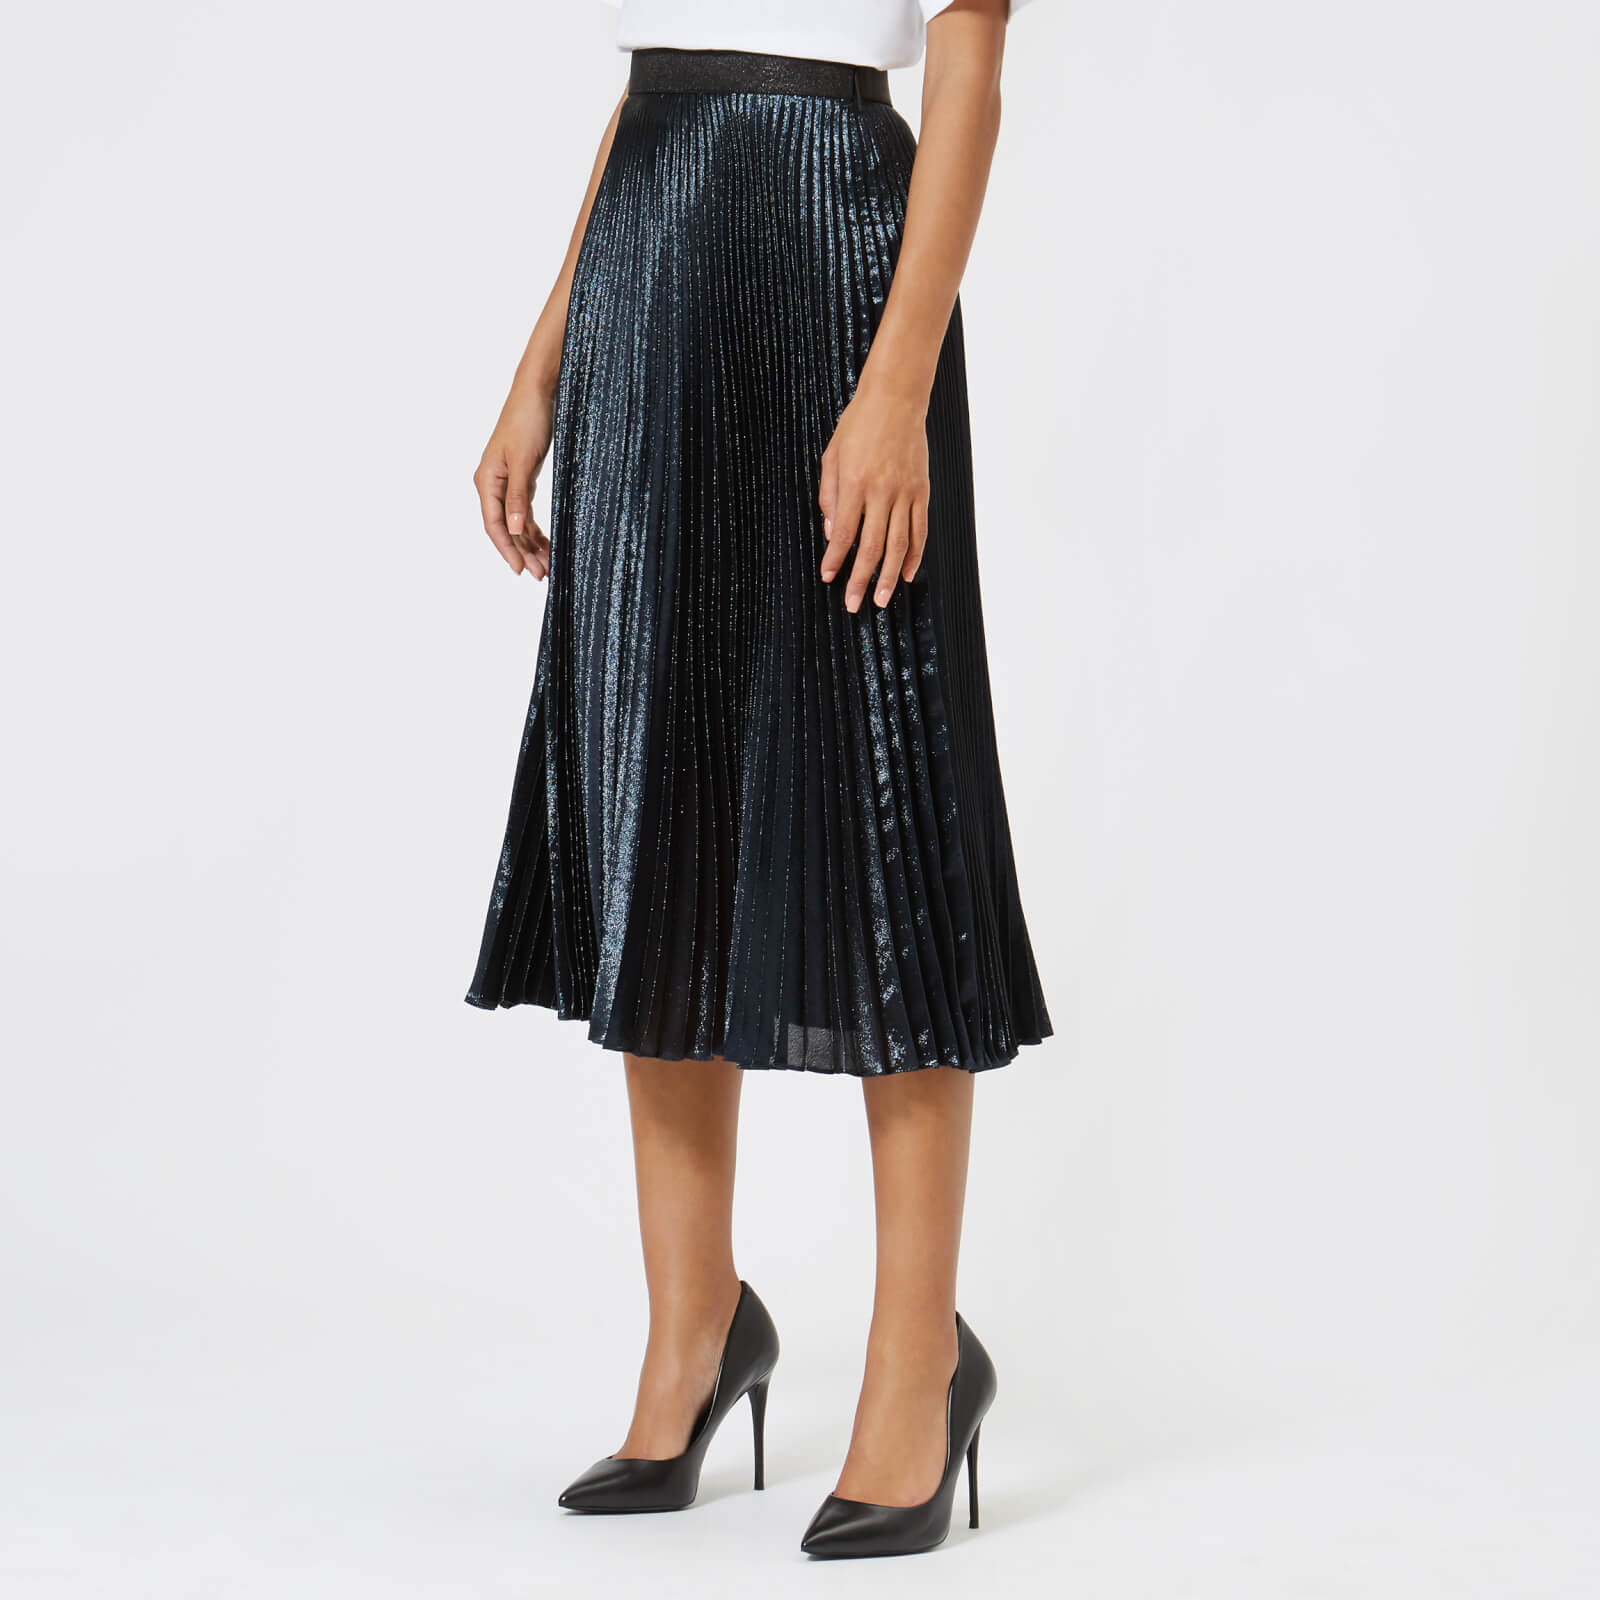 21a57bd67 Christopher Kane Women's Lamé Pleated Skirt - Navy - Free UK Delivery over  £50